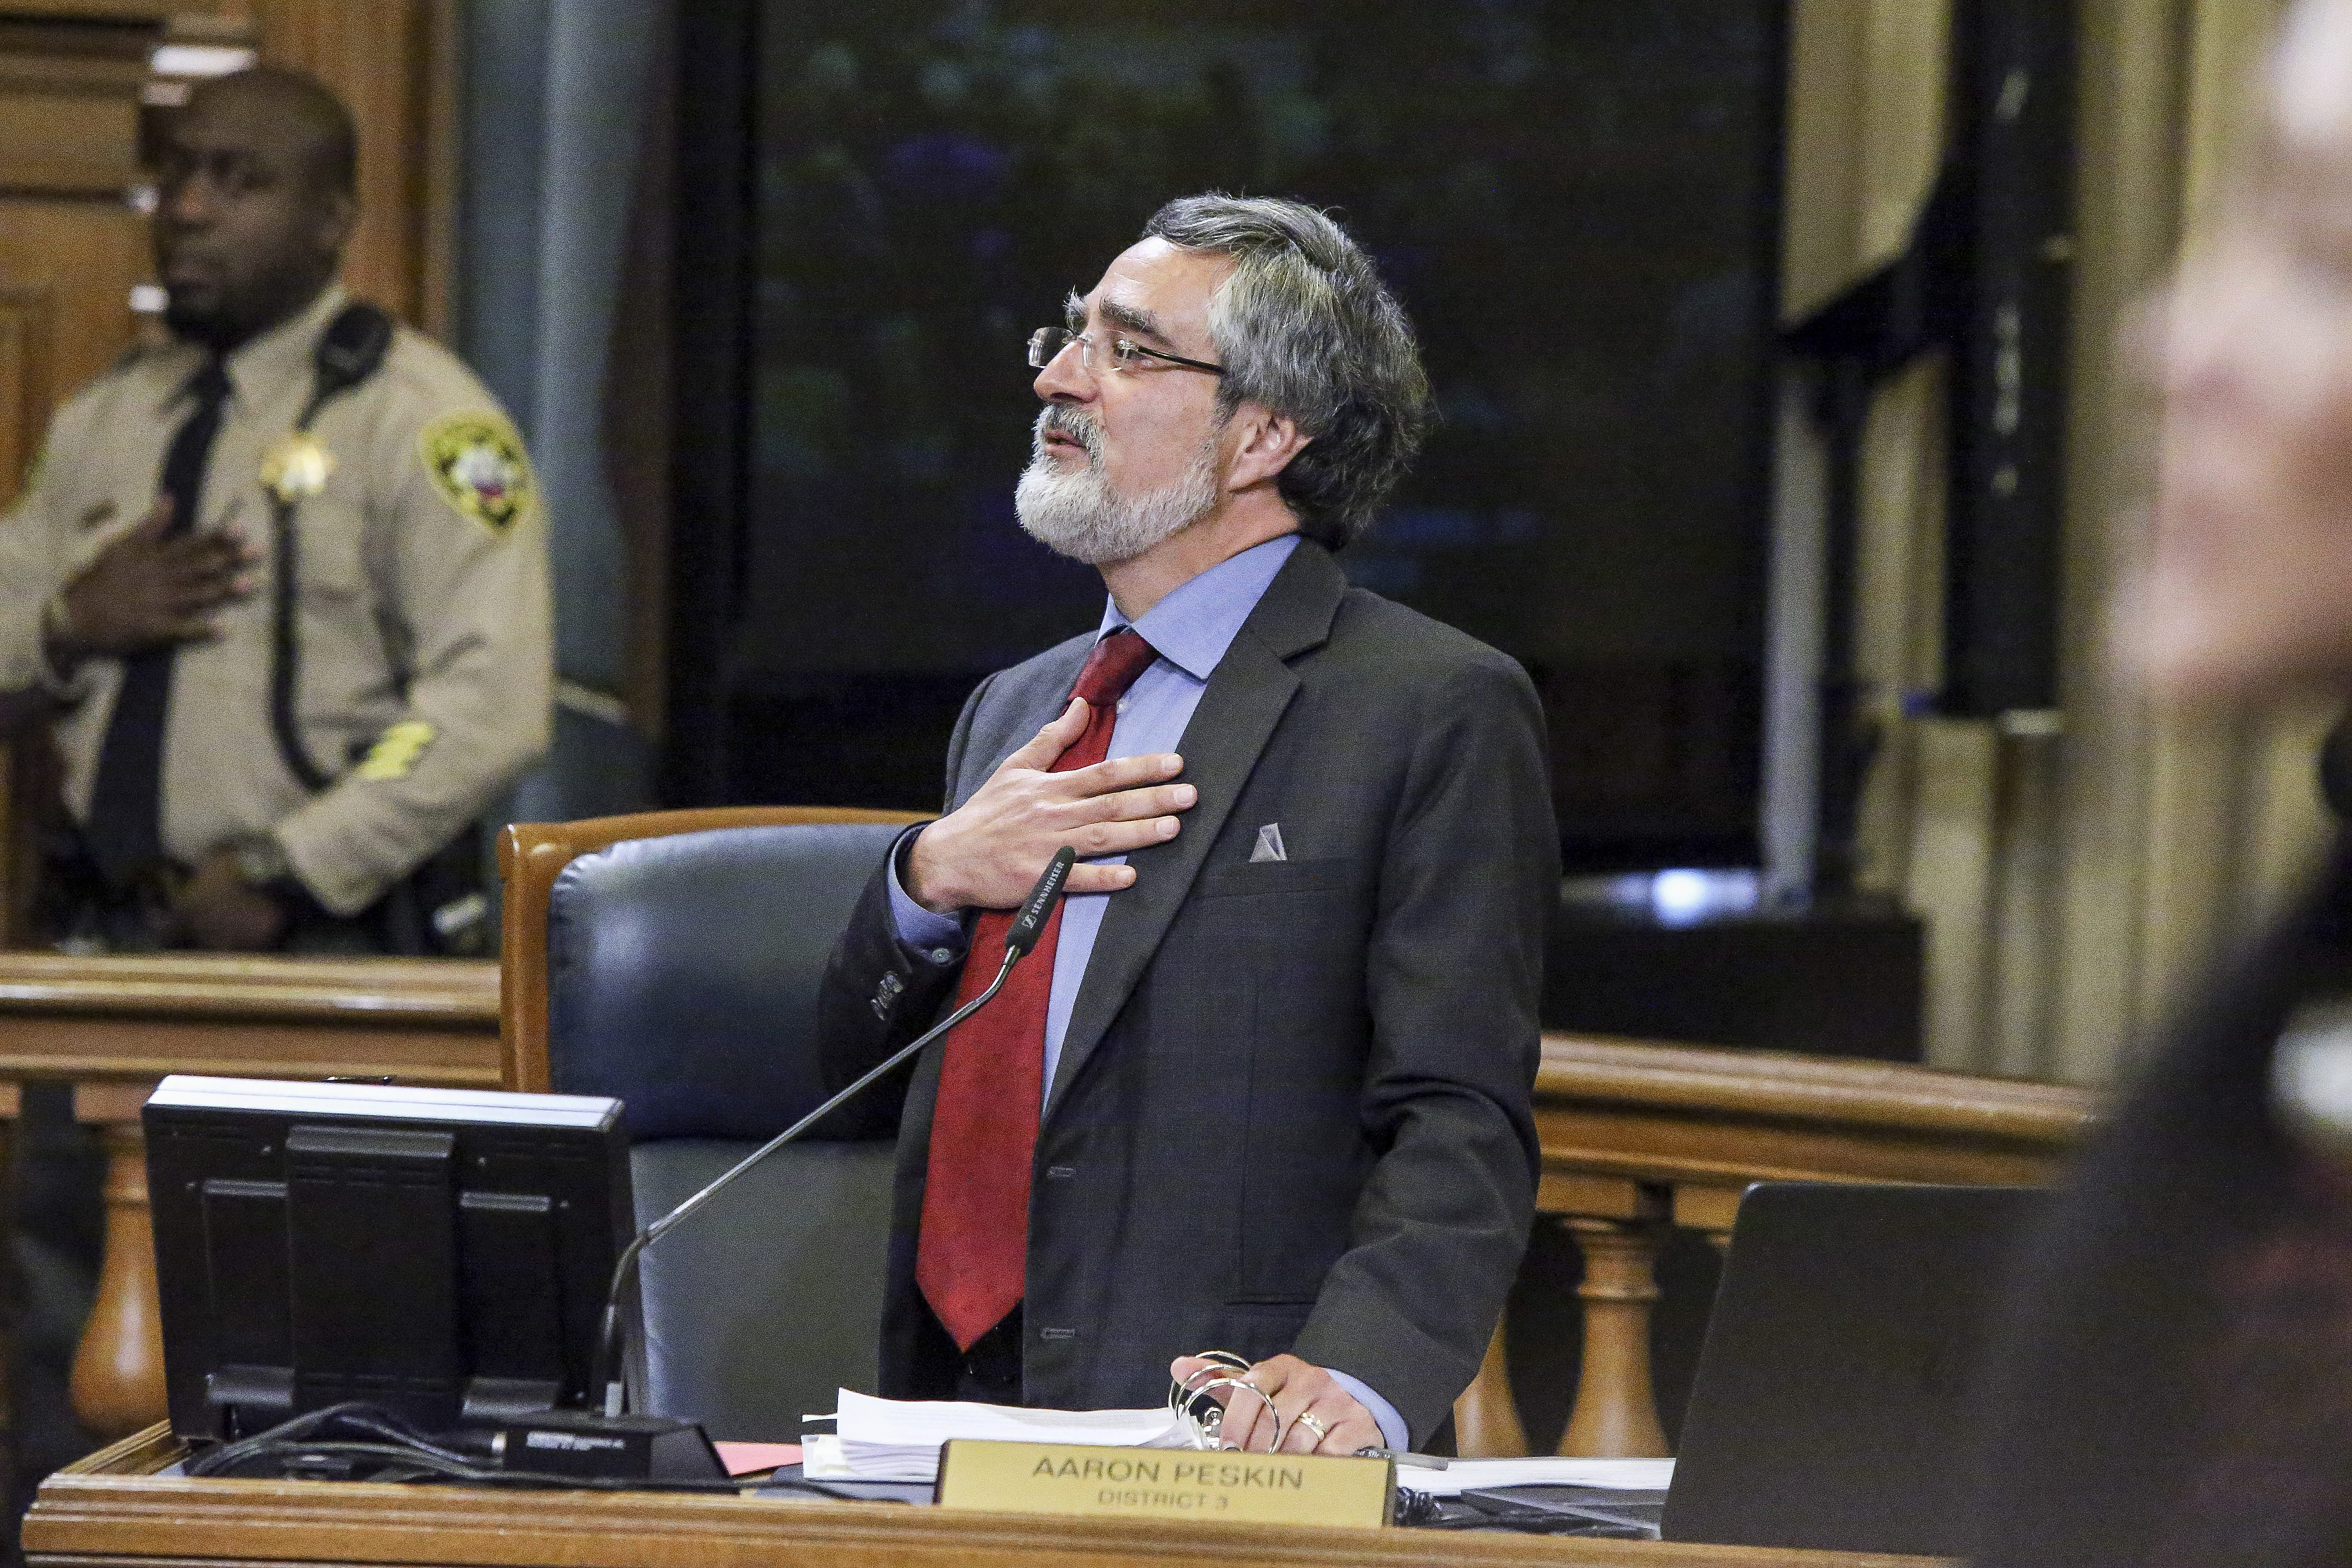 Supervisor Aaron Peskin takes his seat at the Board of Supervisors meeting shortly after bieng sworn in at a private ceremony in San Francisco's City Hall Tuesday, December 8, 2015. Supervisor Peskin won the District 3 seat from under the mayor appointed Julie Christensen in the November election which resulted in a 52 percent win over Christensen 43 percent. (Mike Koozmin/S.F. Examiner)